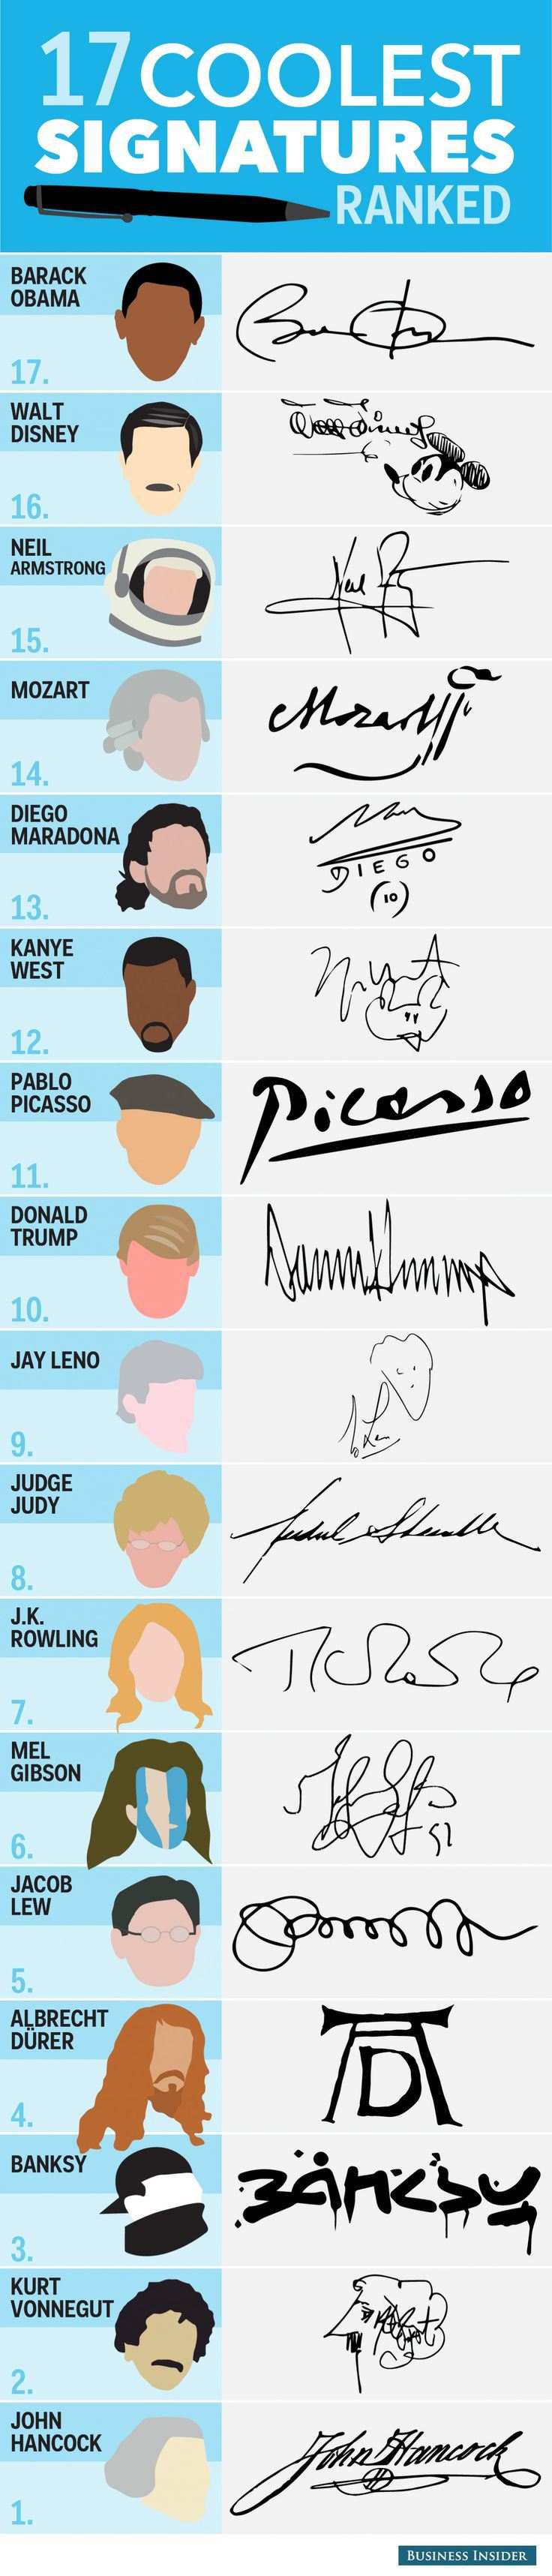 From http://www.businessinsider.sg/the-coolest-signatures-in-history-2014-6/#.Vdqz9tOqqko